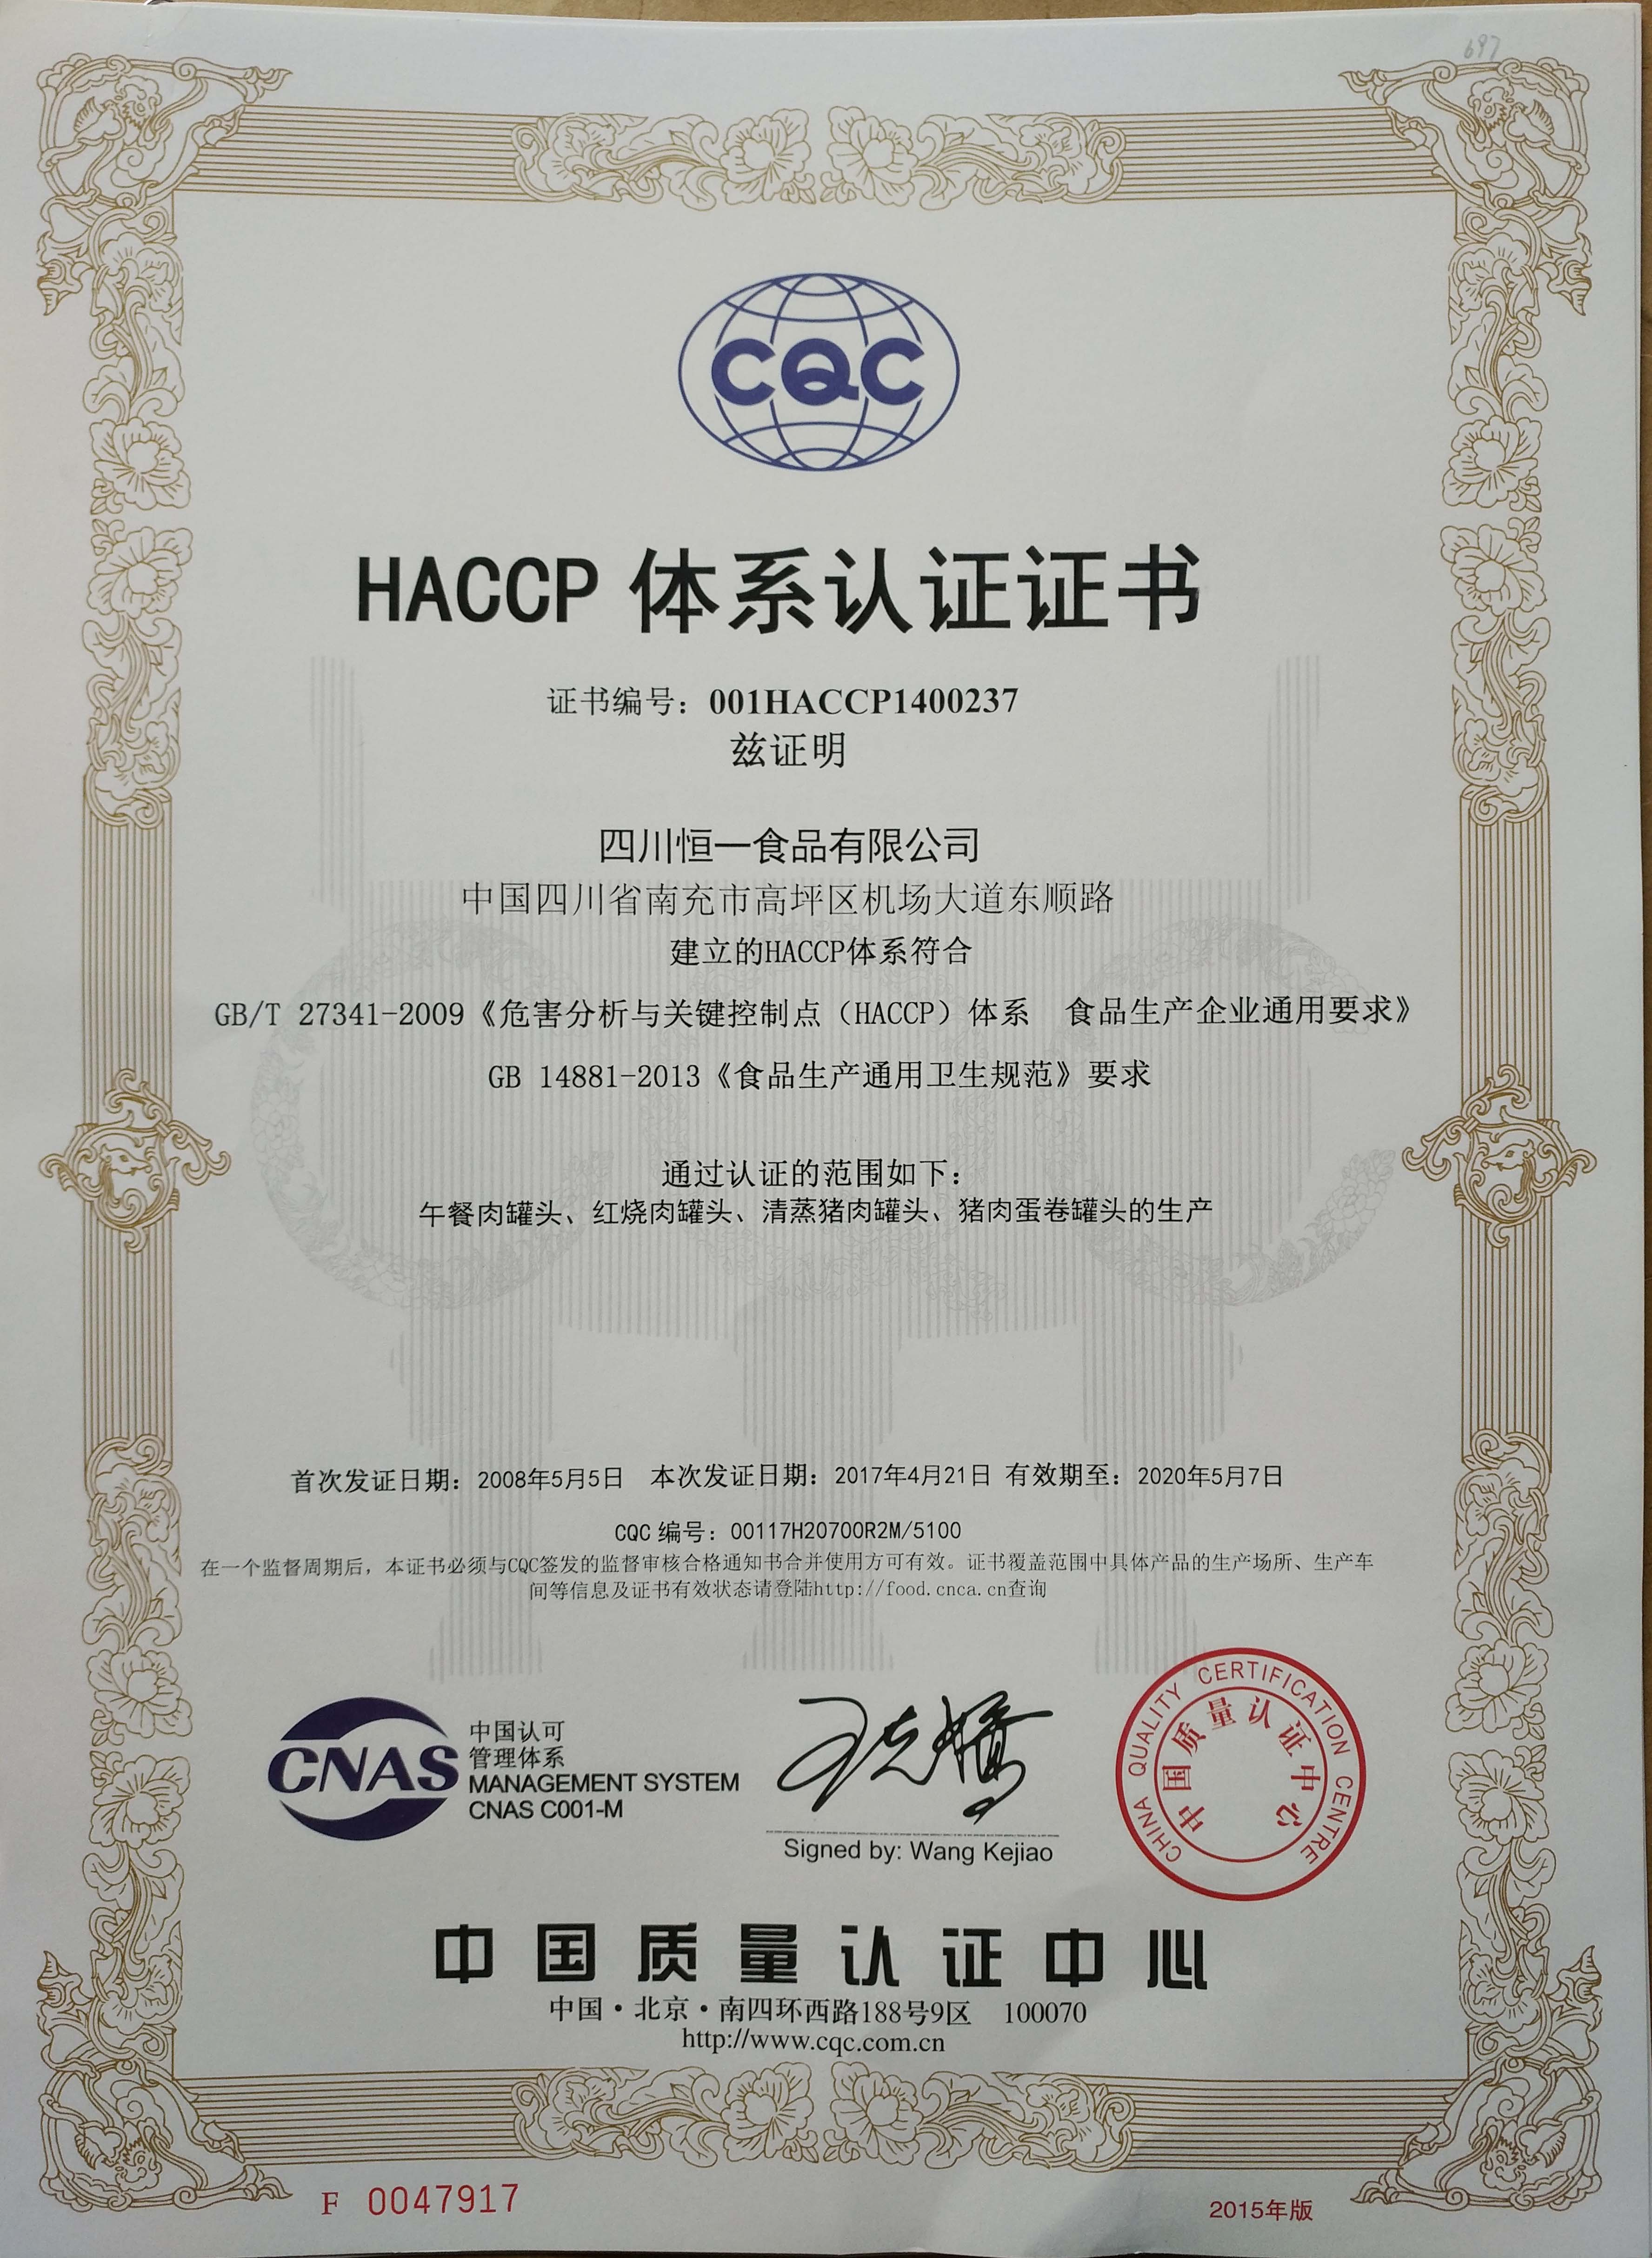 """<div style=""""text-align:center;""""> <span>HACCP</span><br /> </div>"""